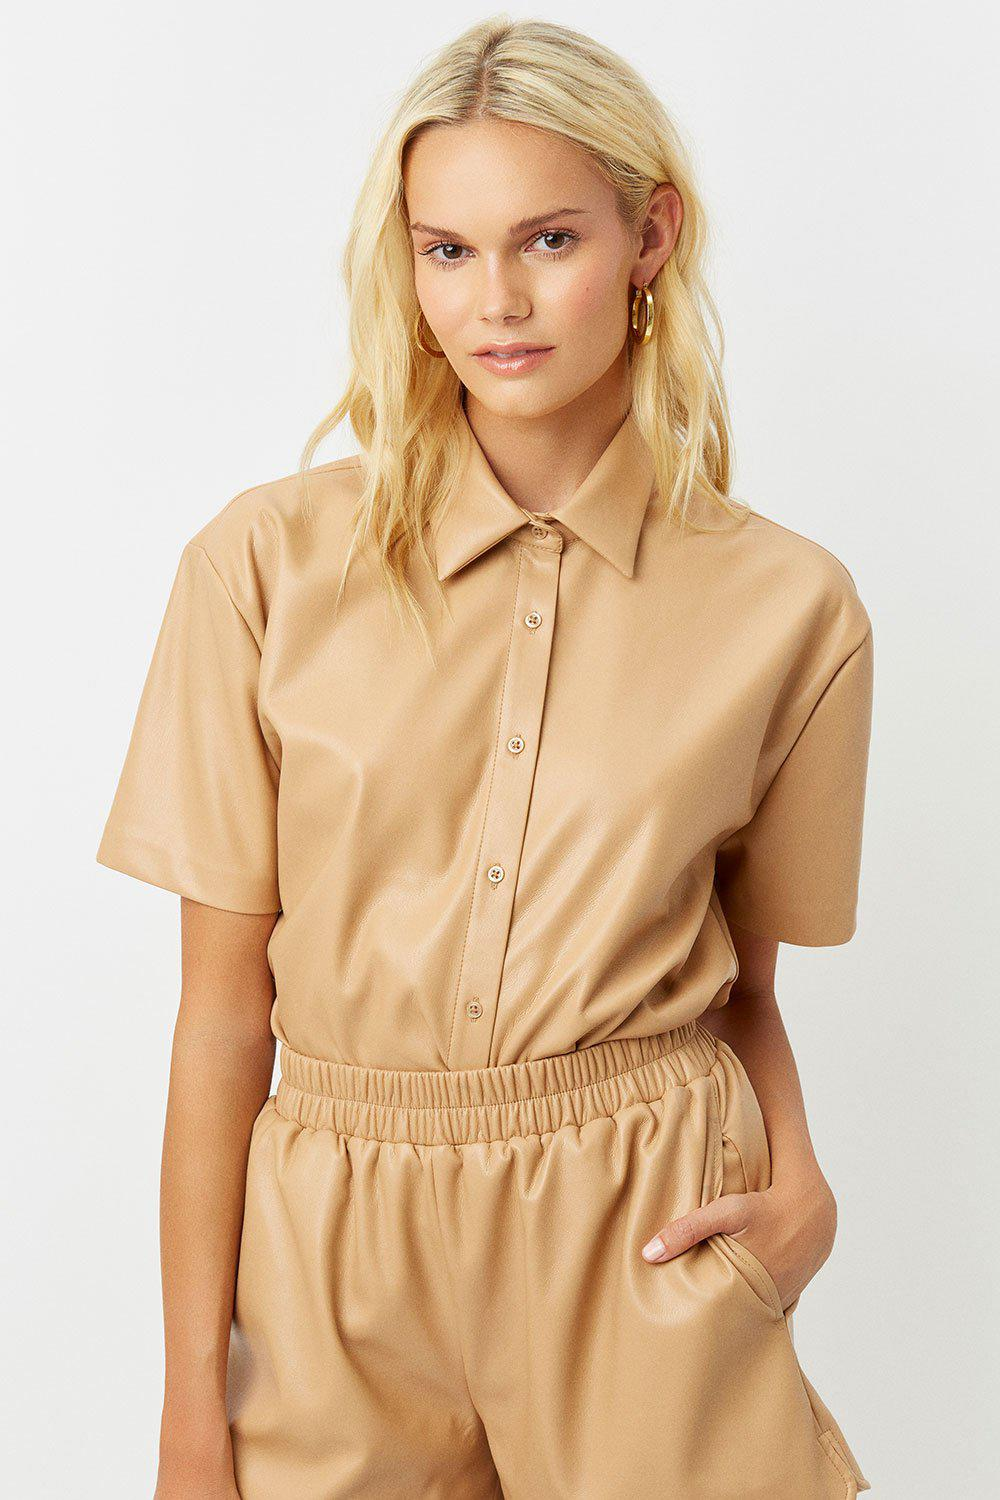 Rusty Vegan Leather Button Up Shirt - Earth